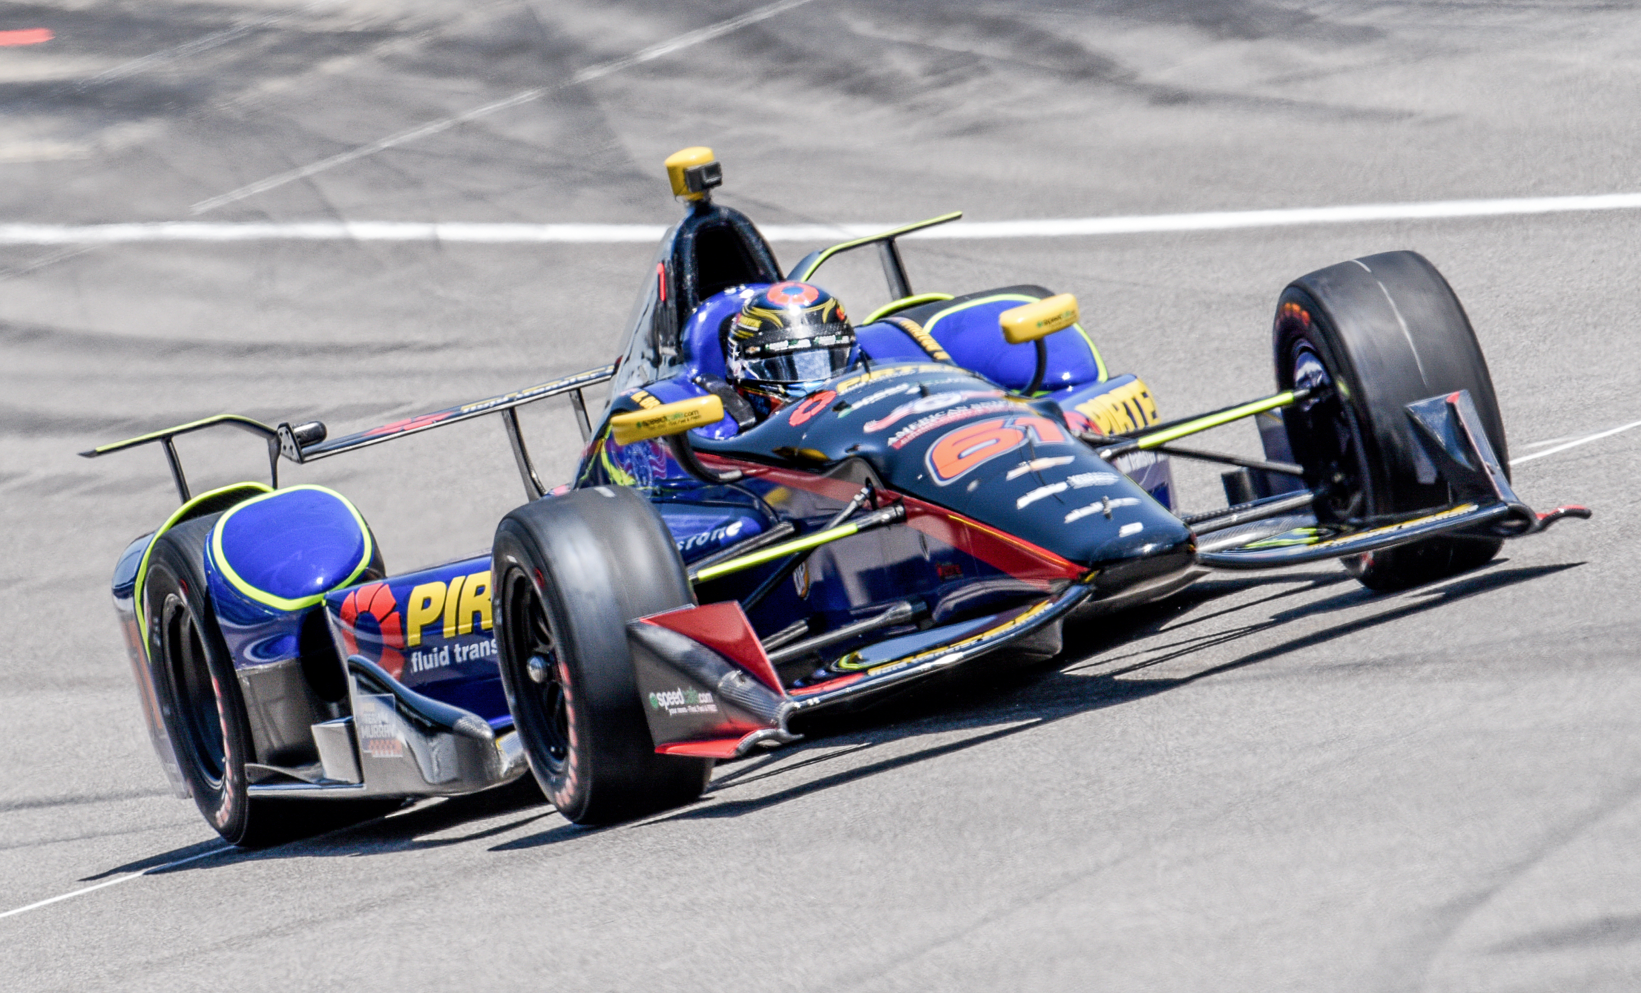 Build-up To Indy 500 Qualifying Continues For Brabham